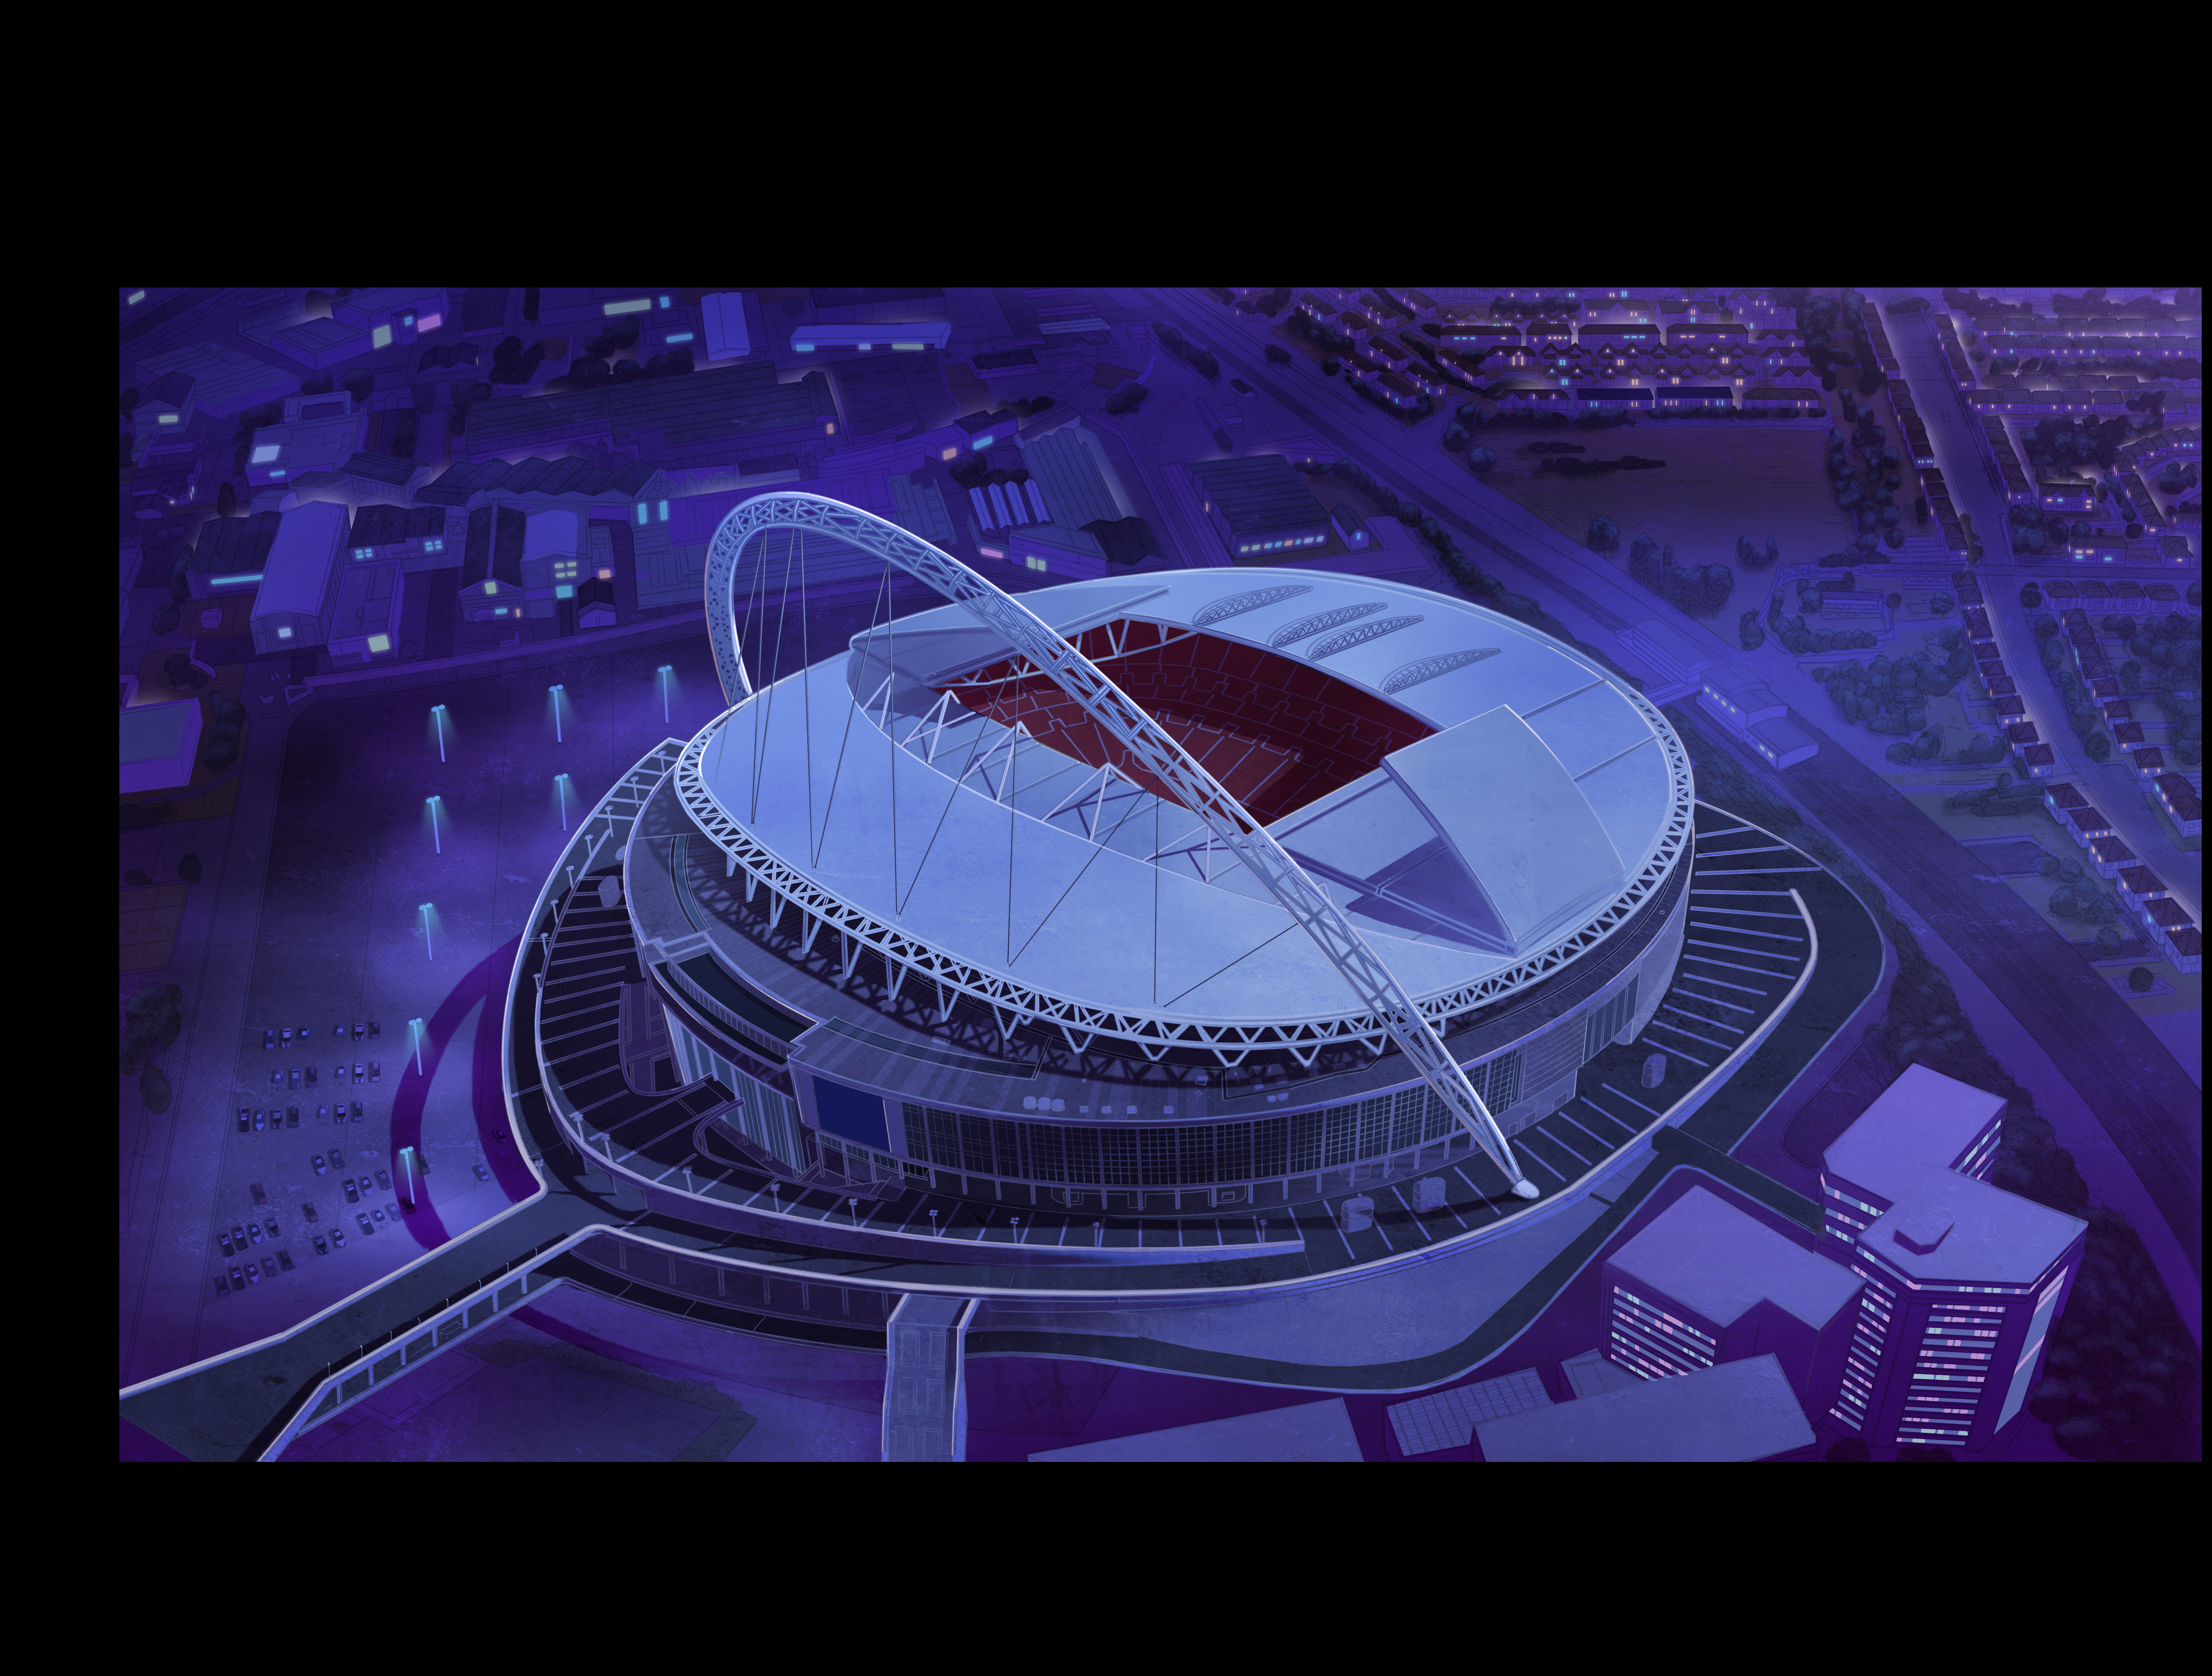 WembleyStadium_Night